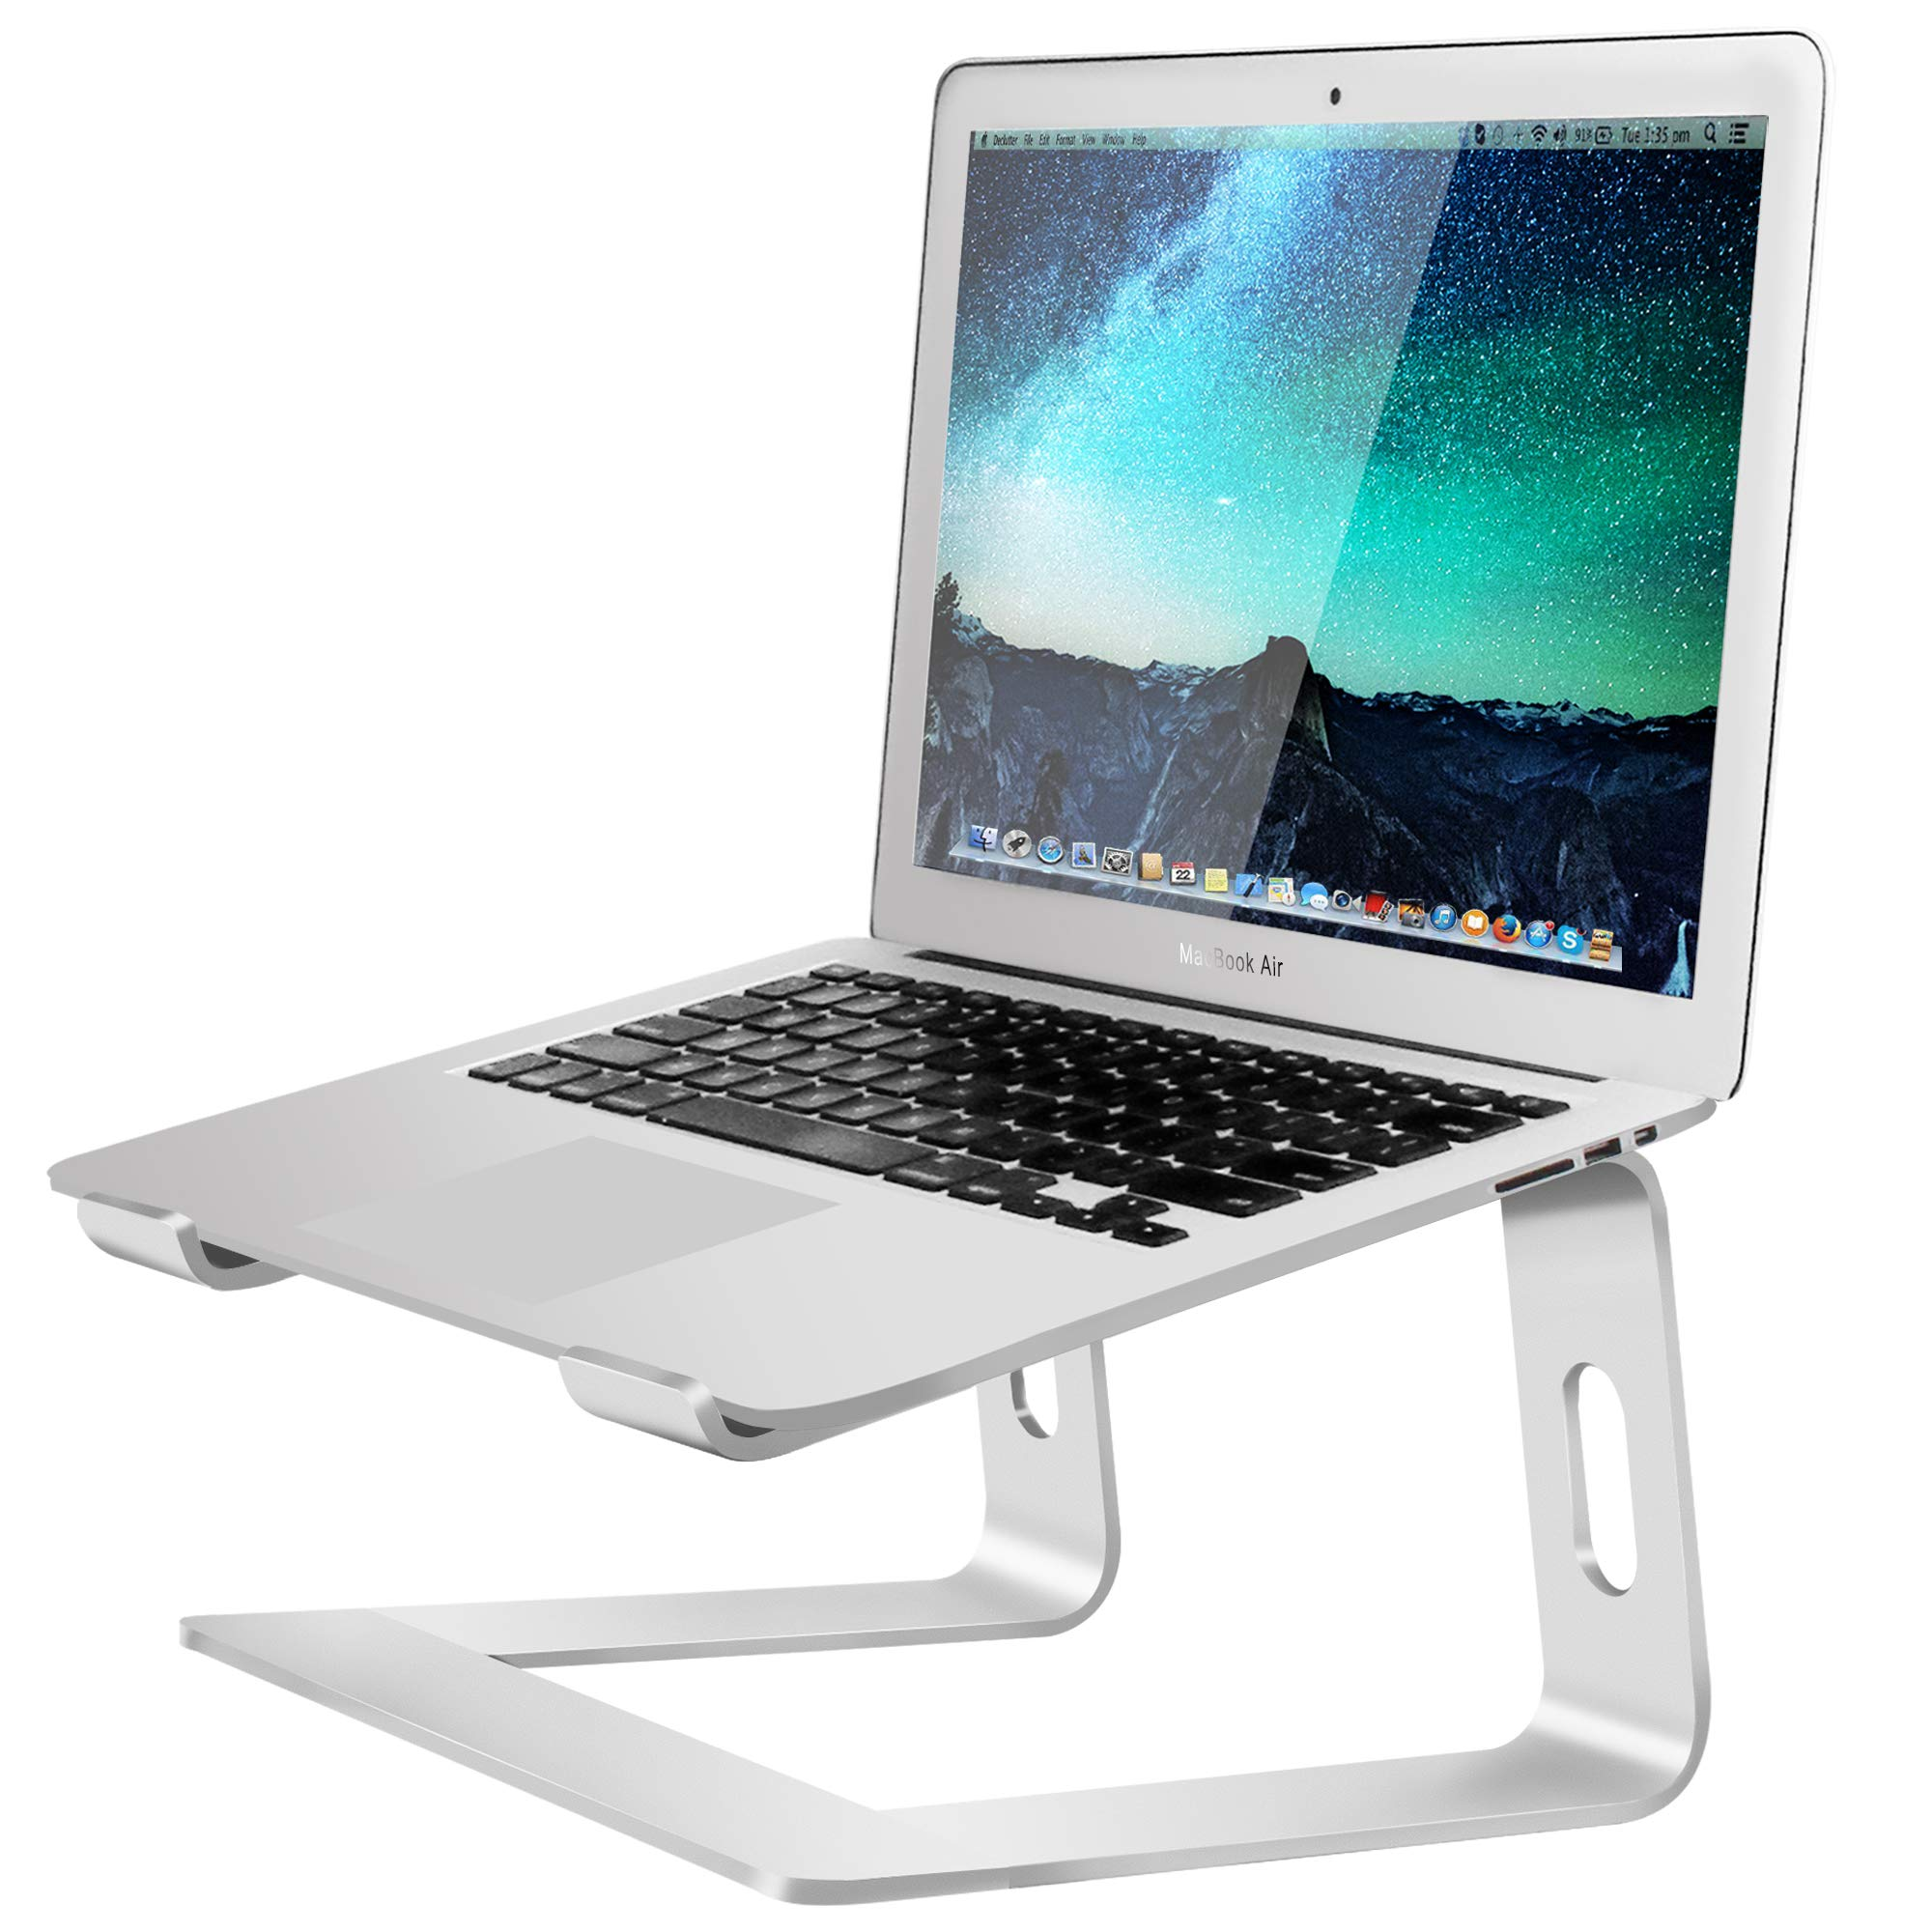 Soundance Aluminum Laptop Stand for Desk Compatible with Mac MacBook Pro Air Apple Notebook, Portable Holder Ergonomic Elevator Metal Riser for 10 to 15.6 inch PC Desktop Computer, LS1 Silver by Soundance